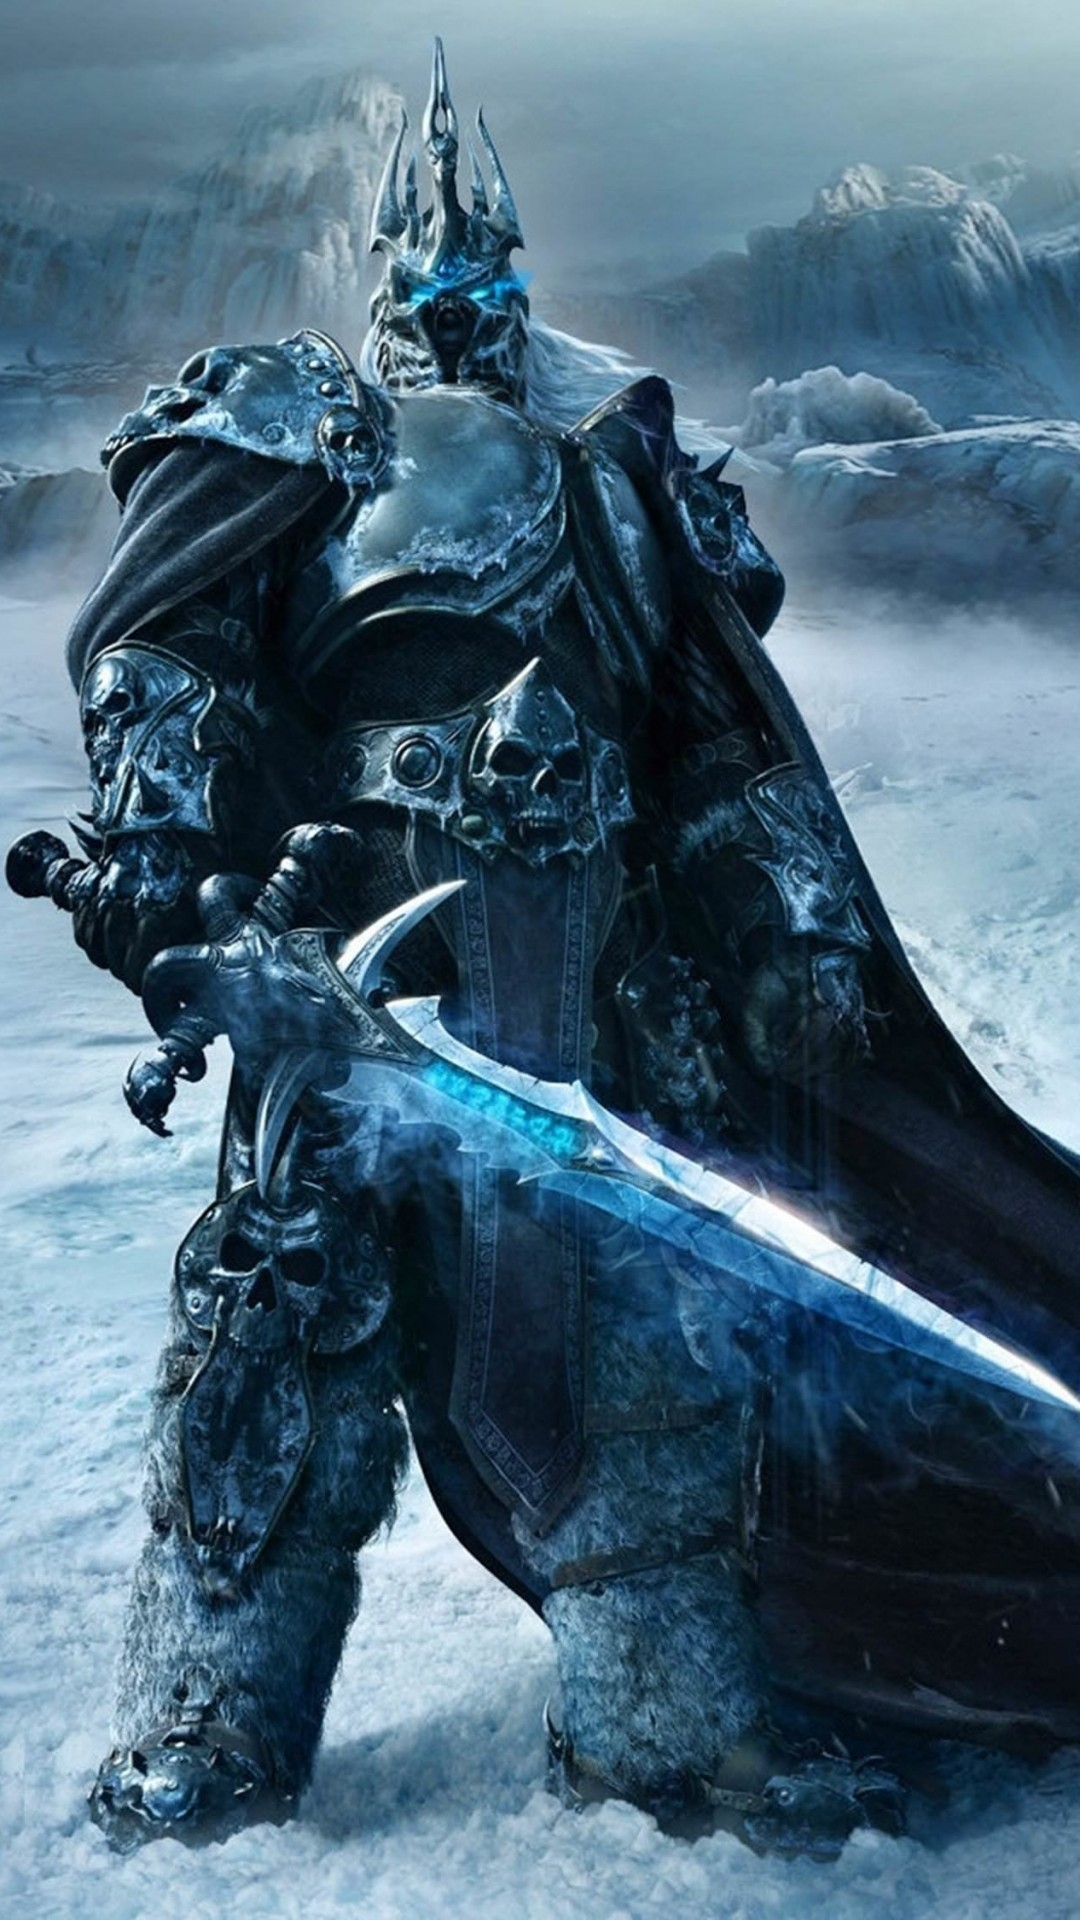 World of Warcraft: Wrath of the Lich King Wallpaper for Motorola Moto X